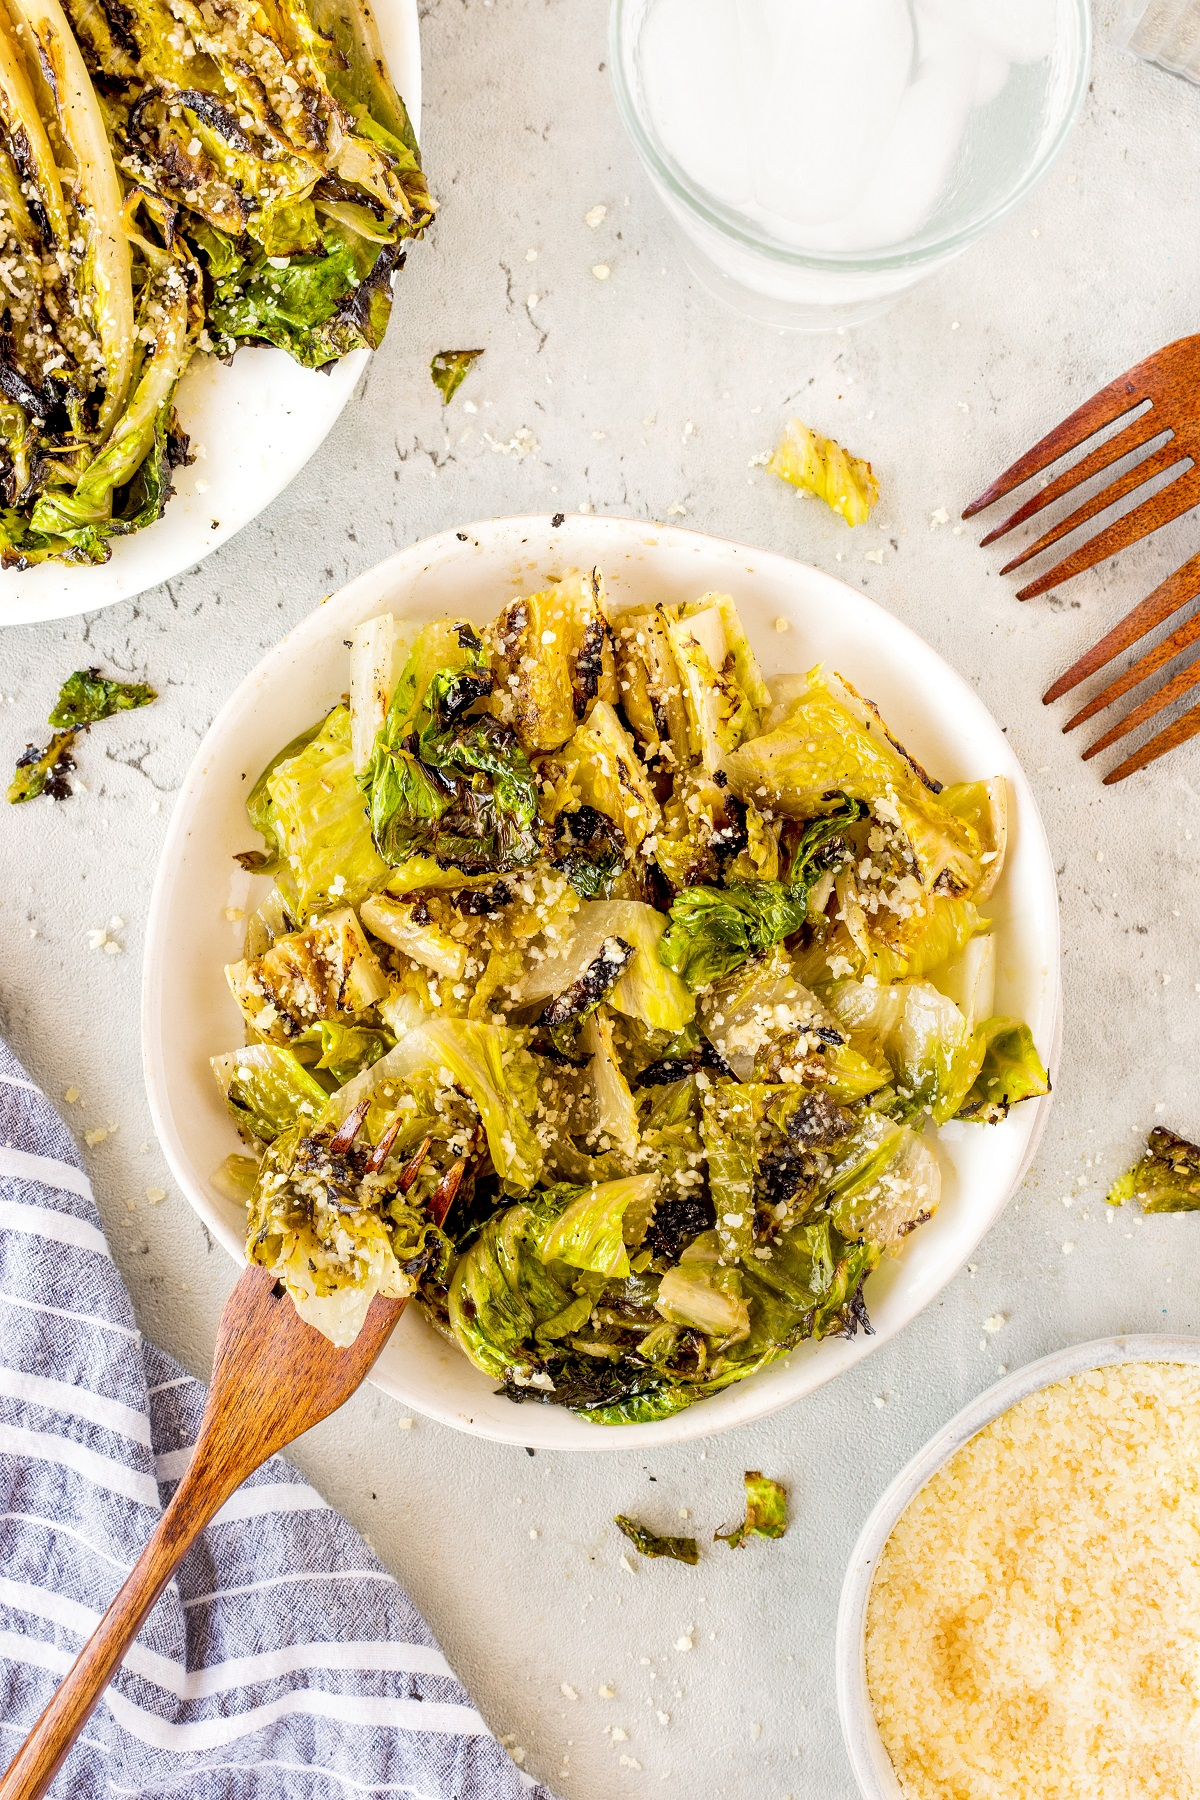 Grilled romaine lettuce chopped and place in a white serving bowl with grated asiago cheese sprinkled on top.